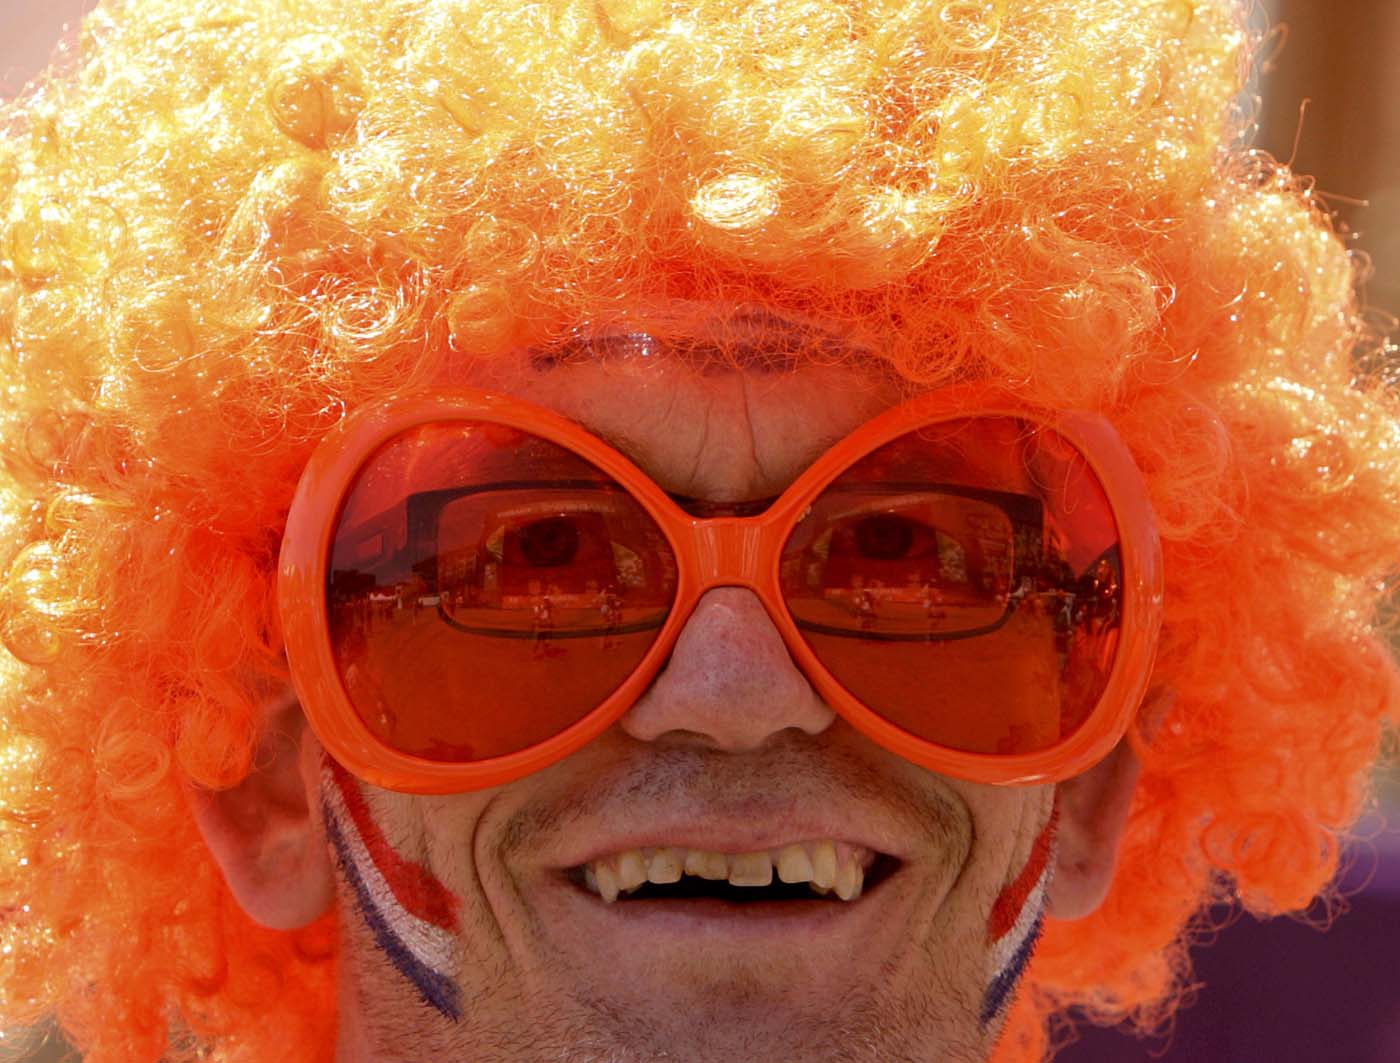 A Dutch soccer fan smiles as he relaxes at the Euro 2012 fan zone in Kharkiv, some 480 km (300 miles) east of Kiev, June 13, 2012. (Vasily Fedosenko/Reuters)